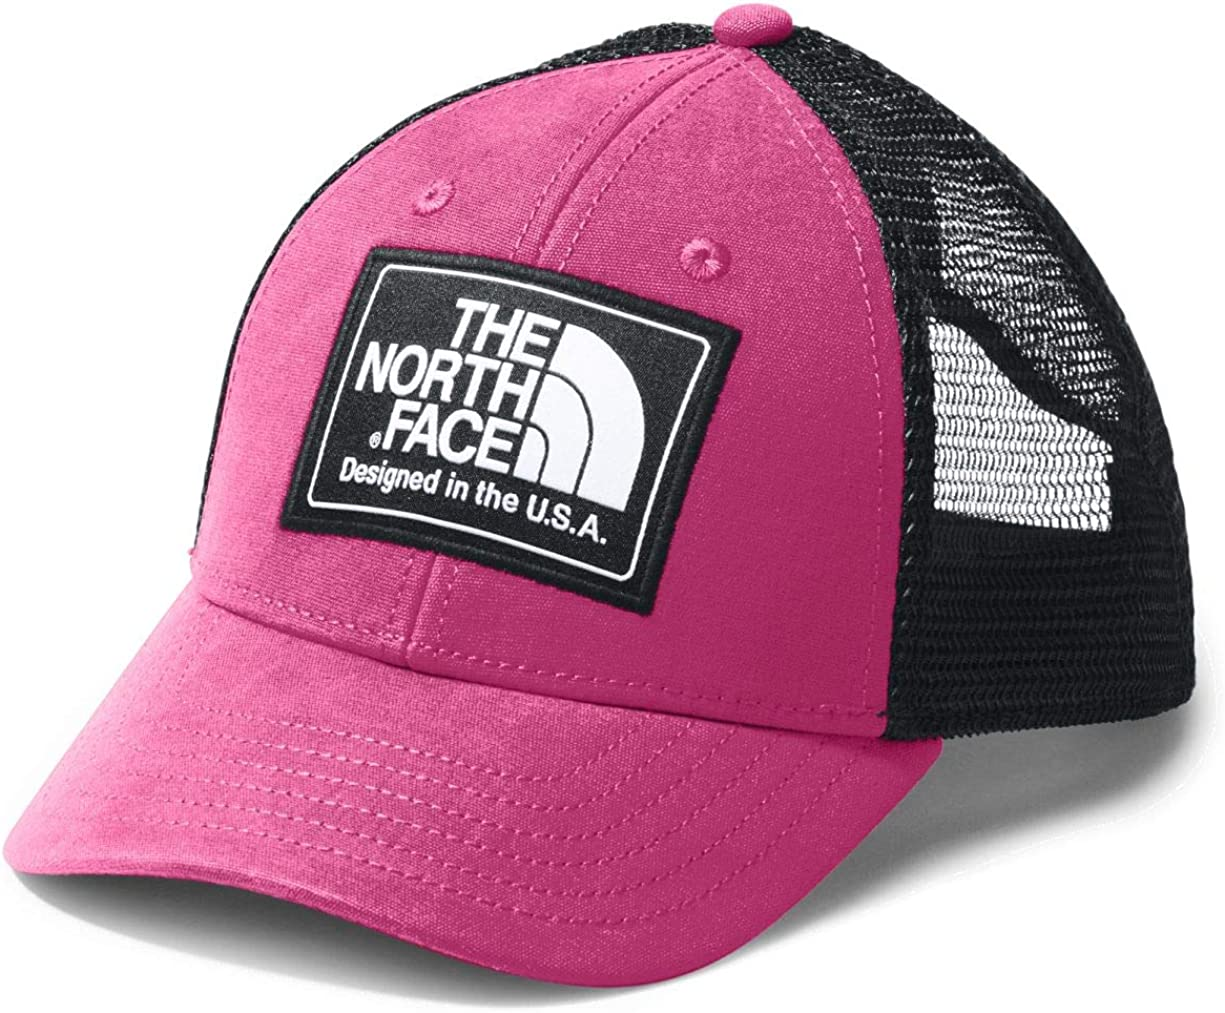 The North Face Youth Unisex...